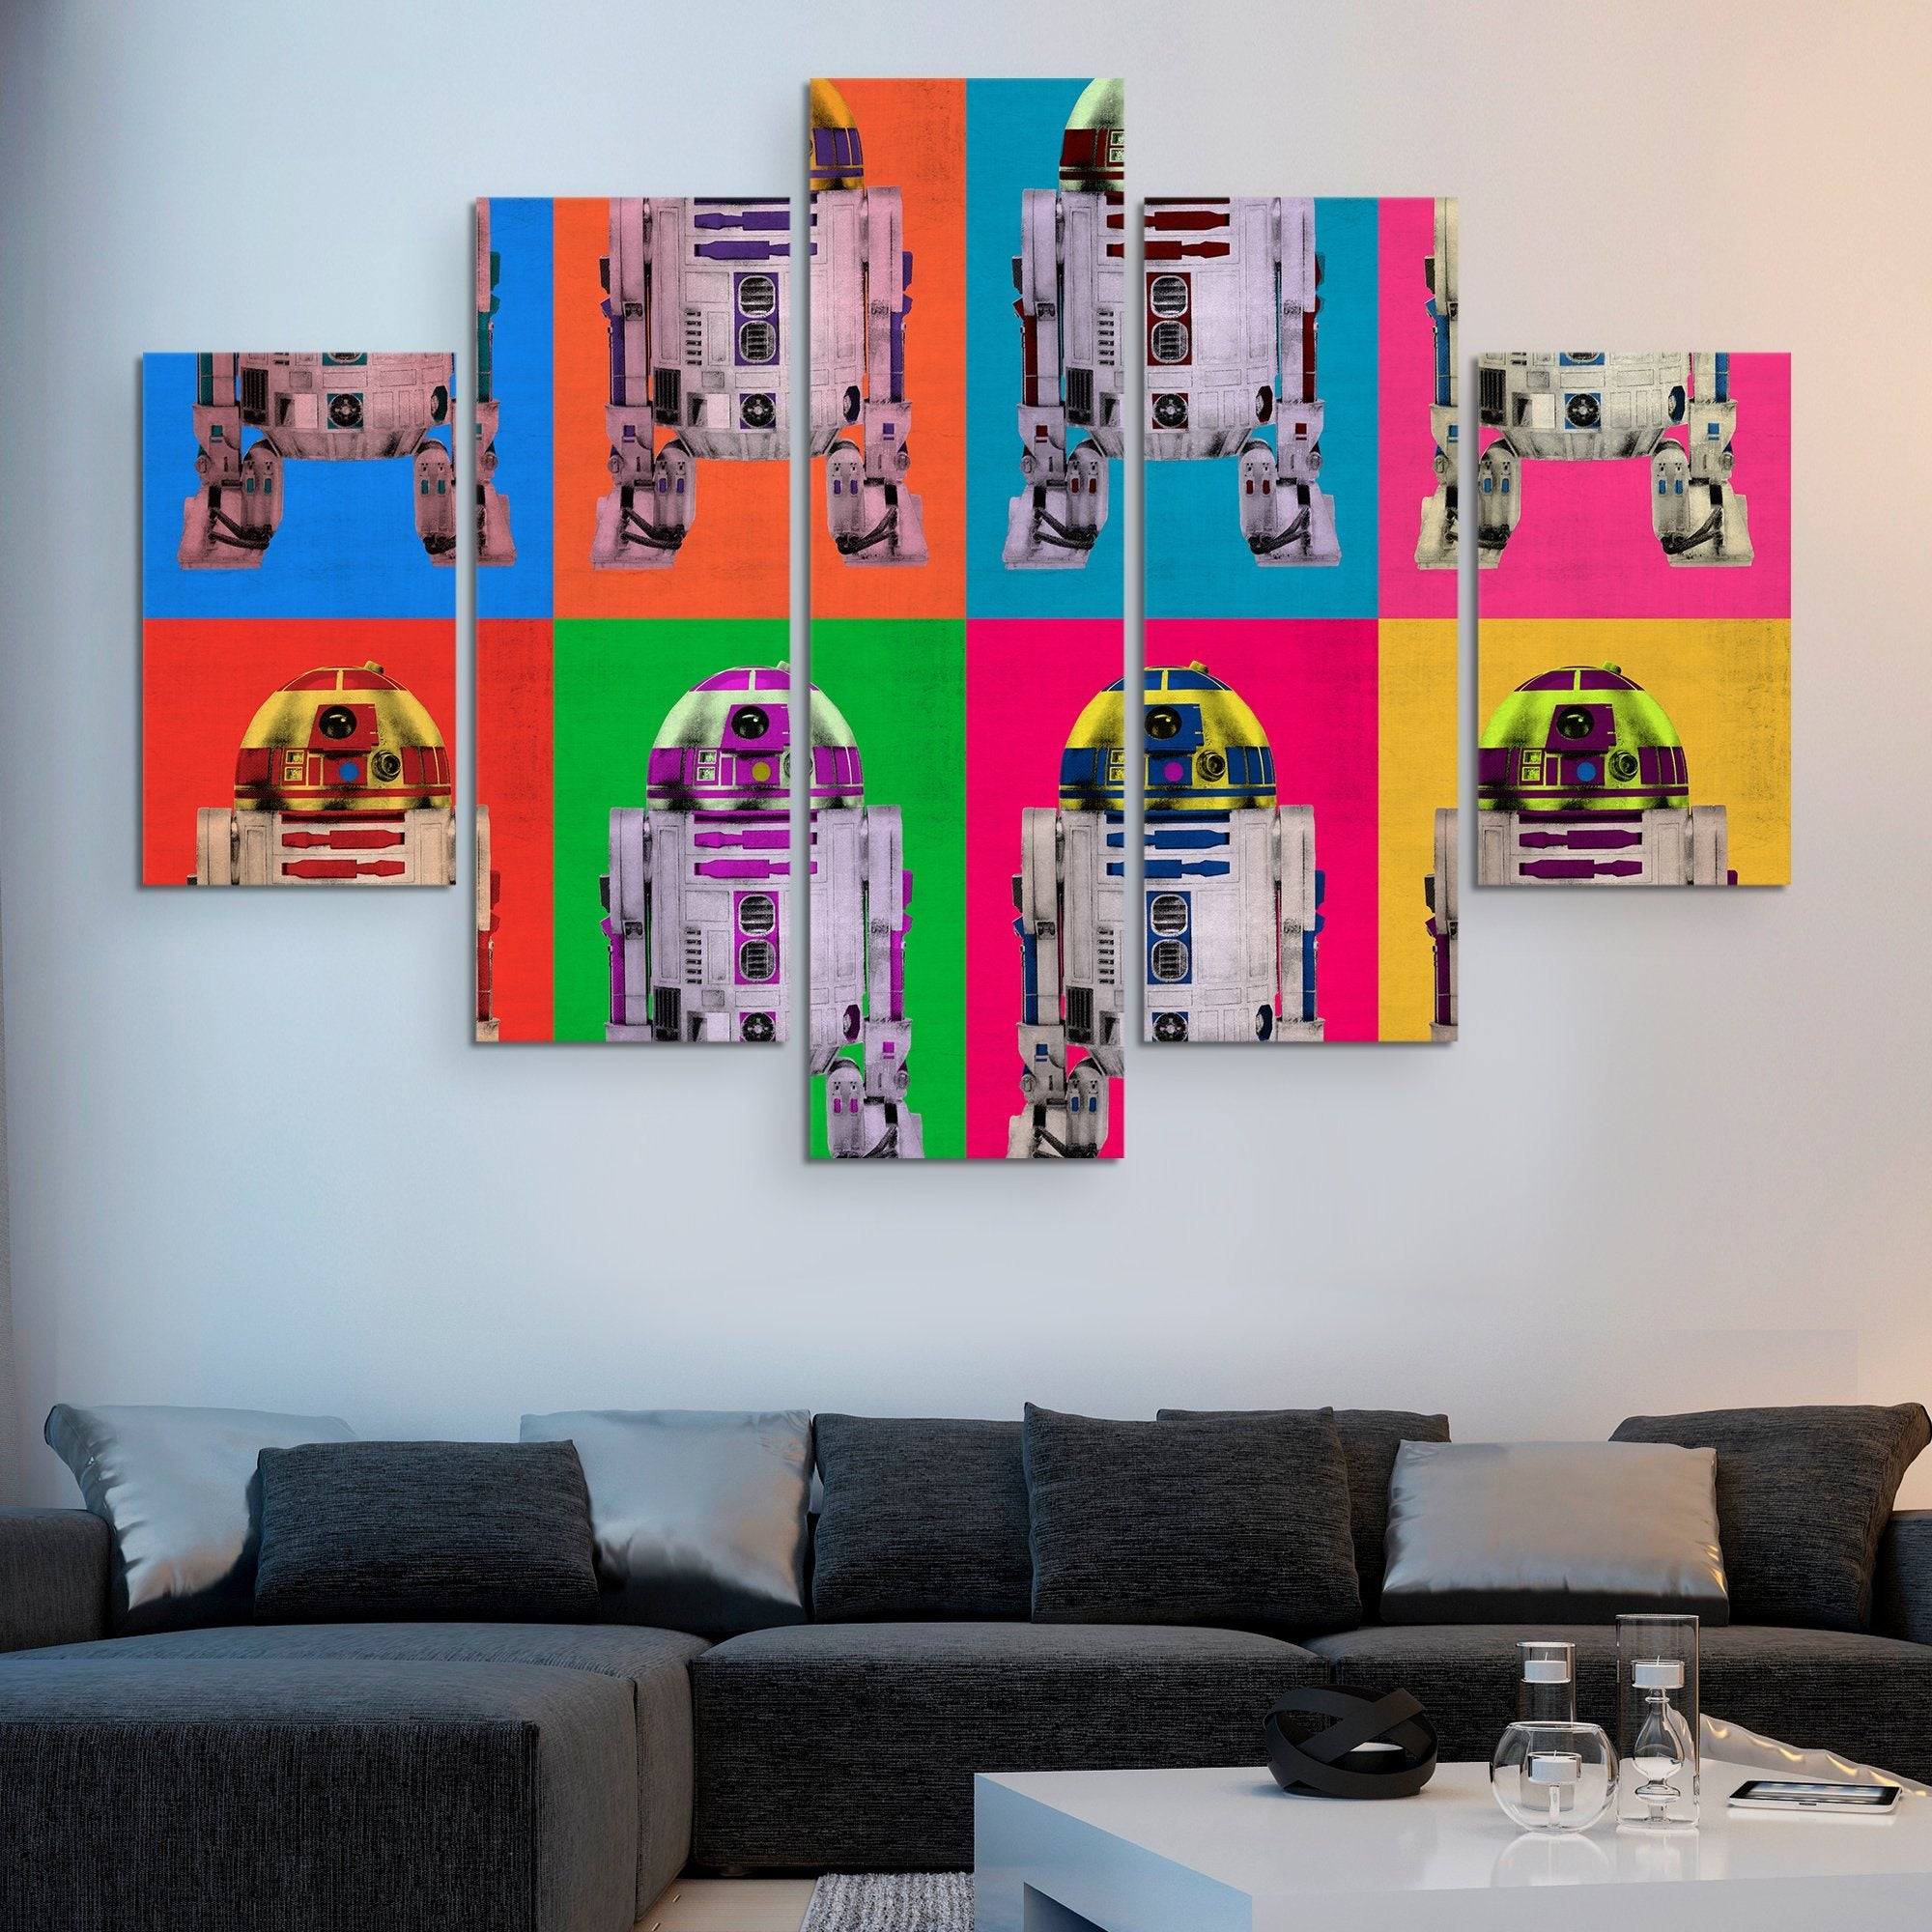 5 piece r2D2 Droid wall art